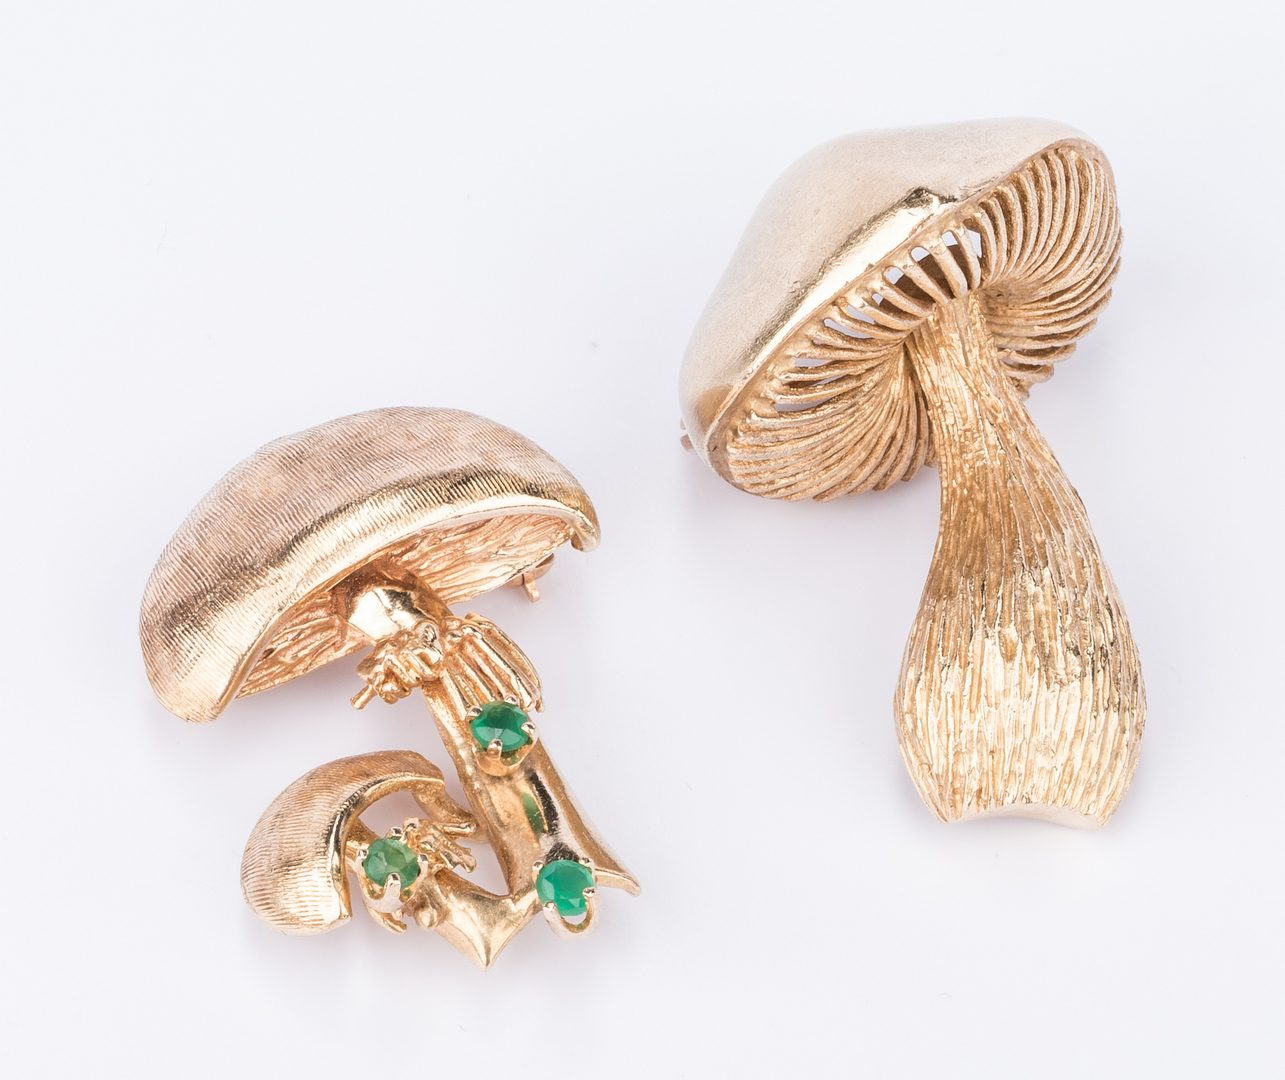 Lot 213: Four 14K Pins, inc. Mushrooms, 45.5 grams